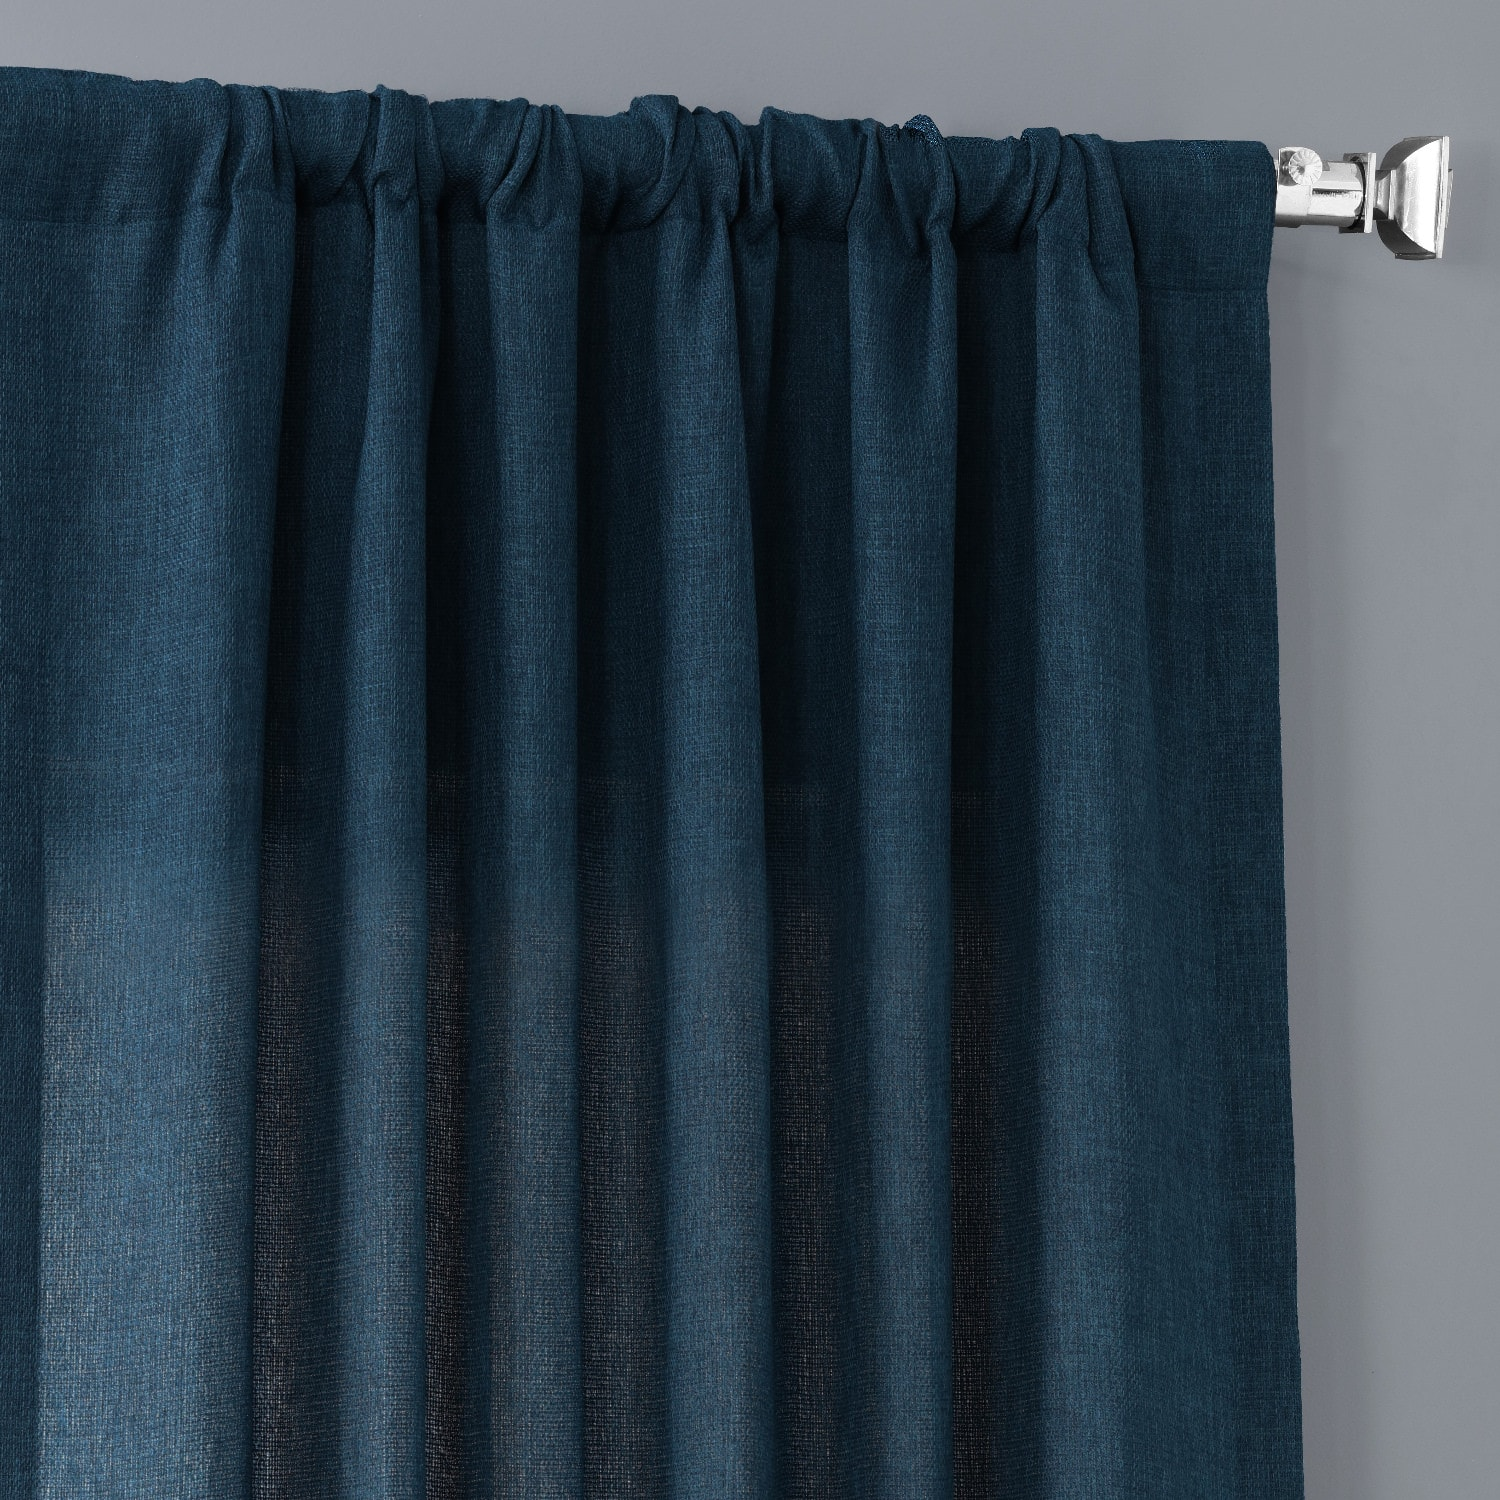 Stormy Blue Faux Linen Sheer Curtain